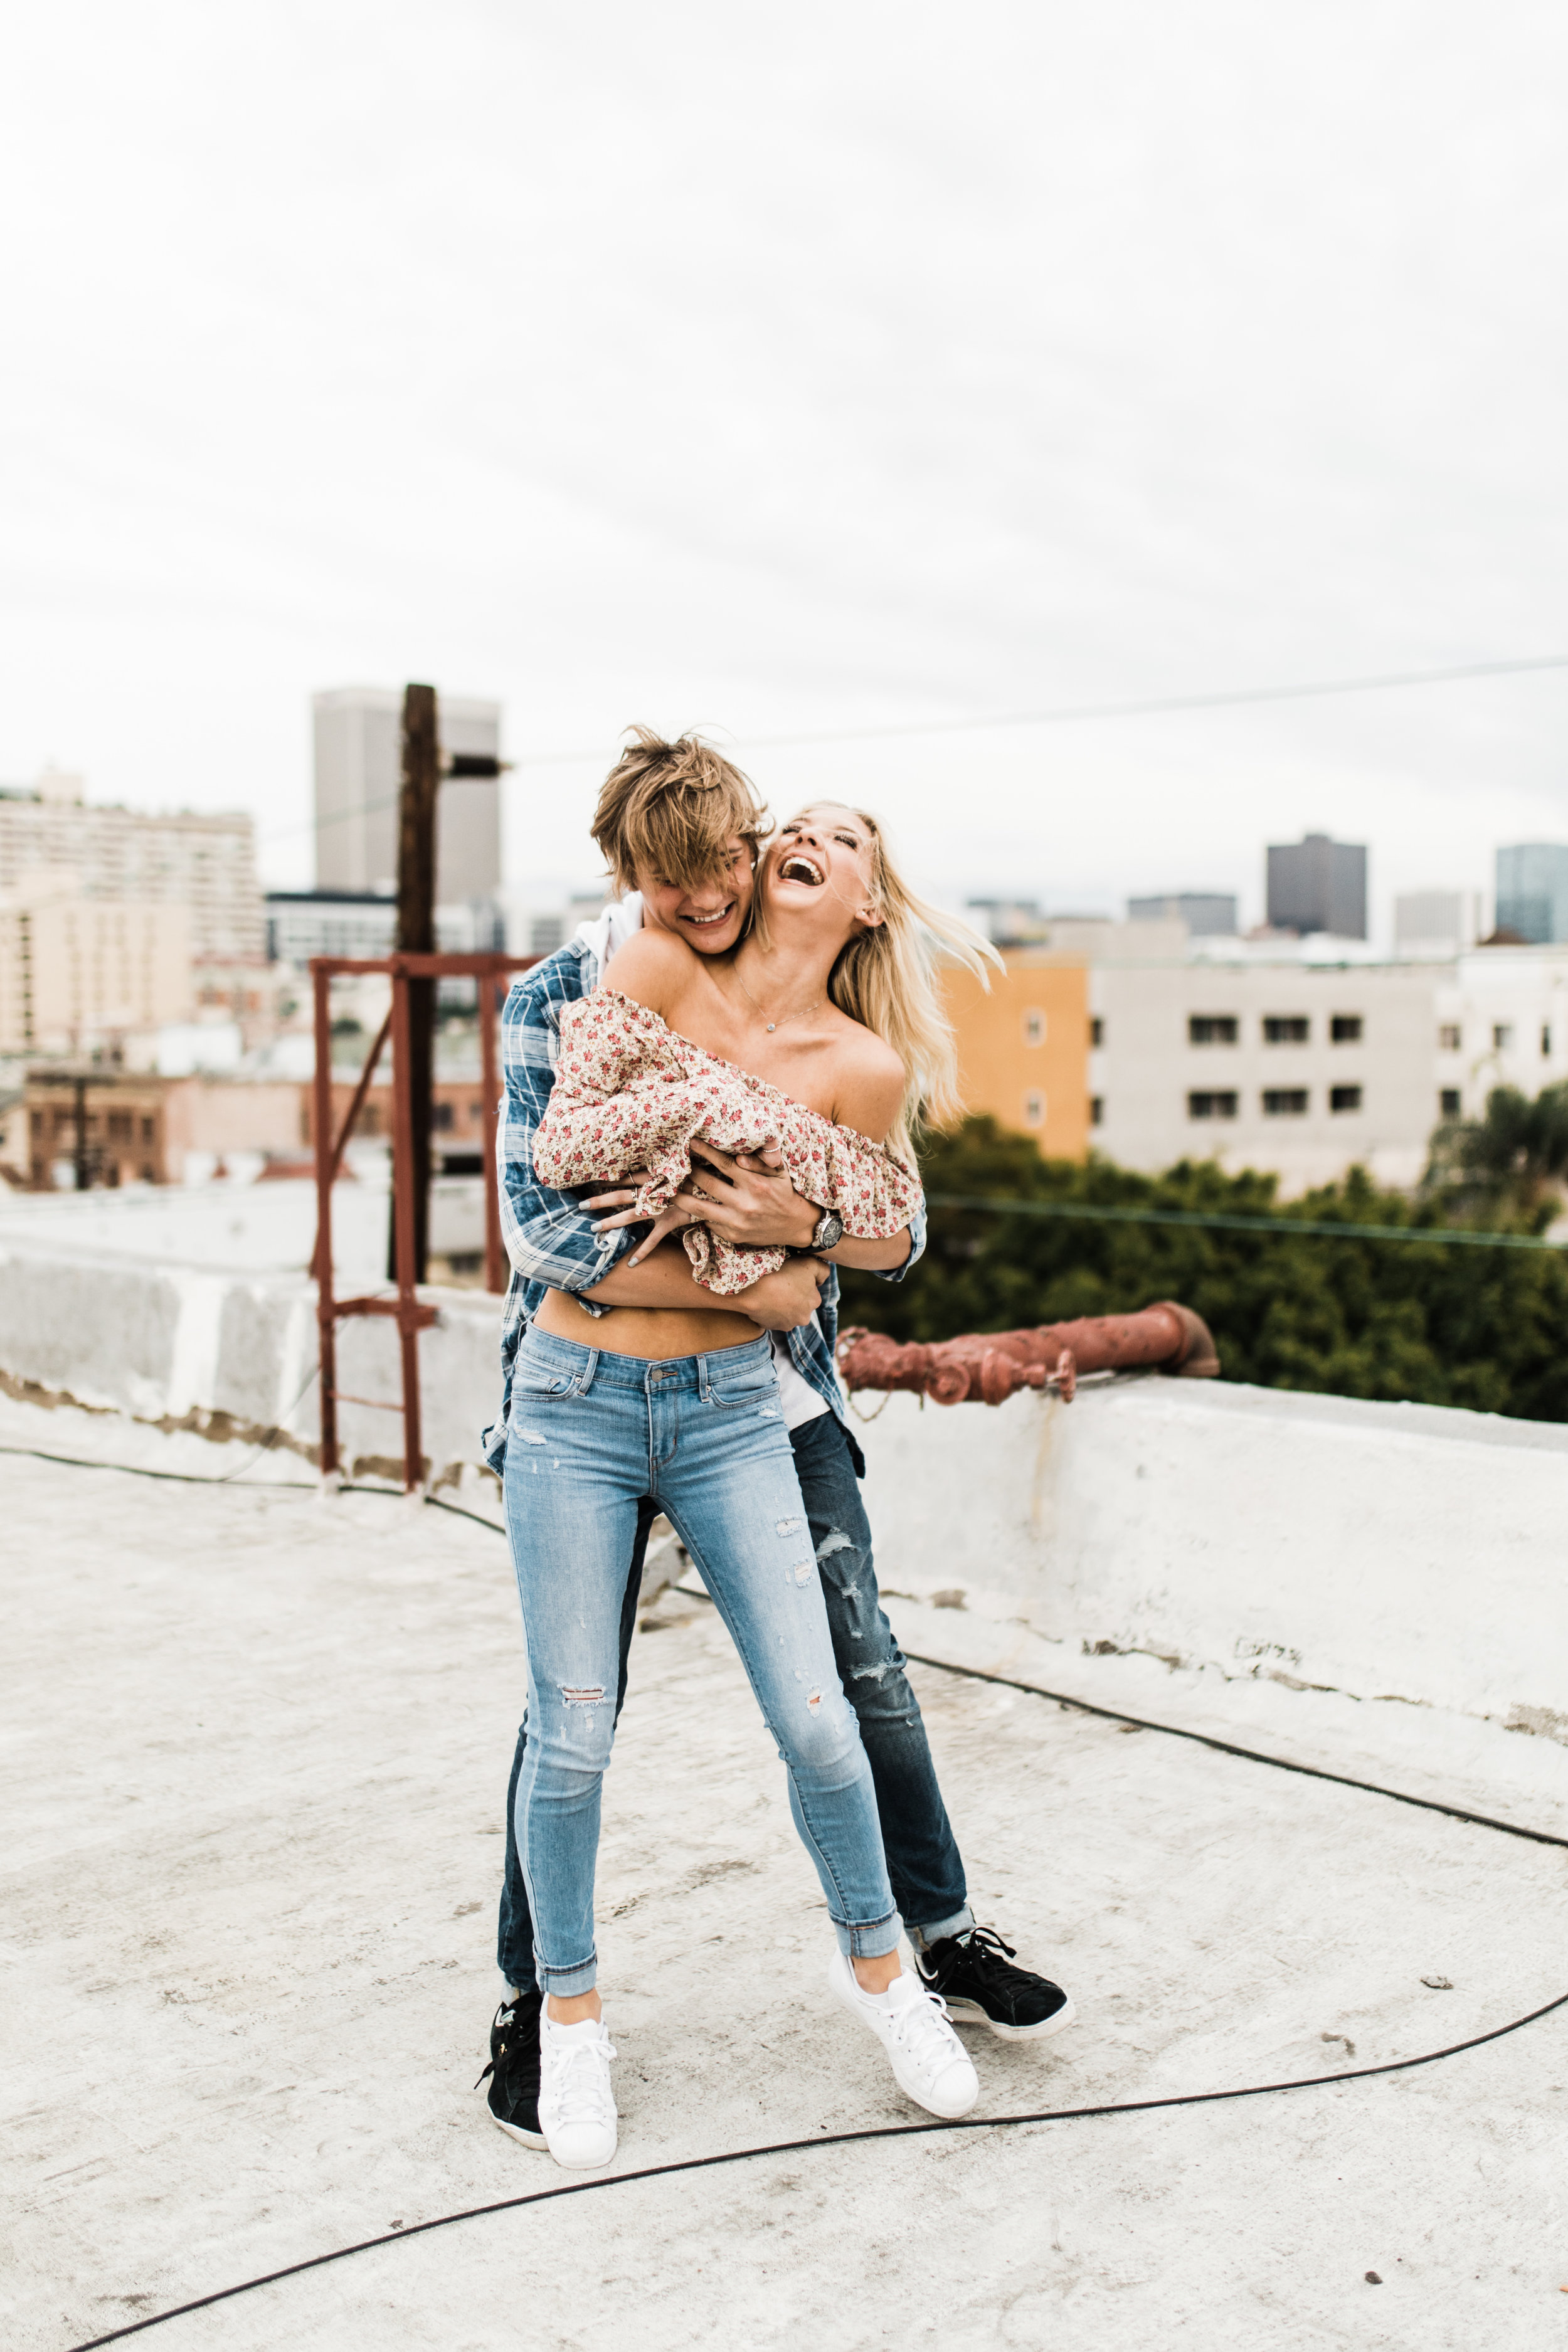 KylaLaufer&GusDeStJeor-Couples-Session-Los-Angeles-Rooftop-Sunset-Clarisse-Rae-Southern-California-Wedding-Photographer_9